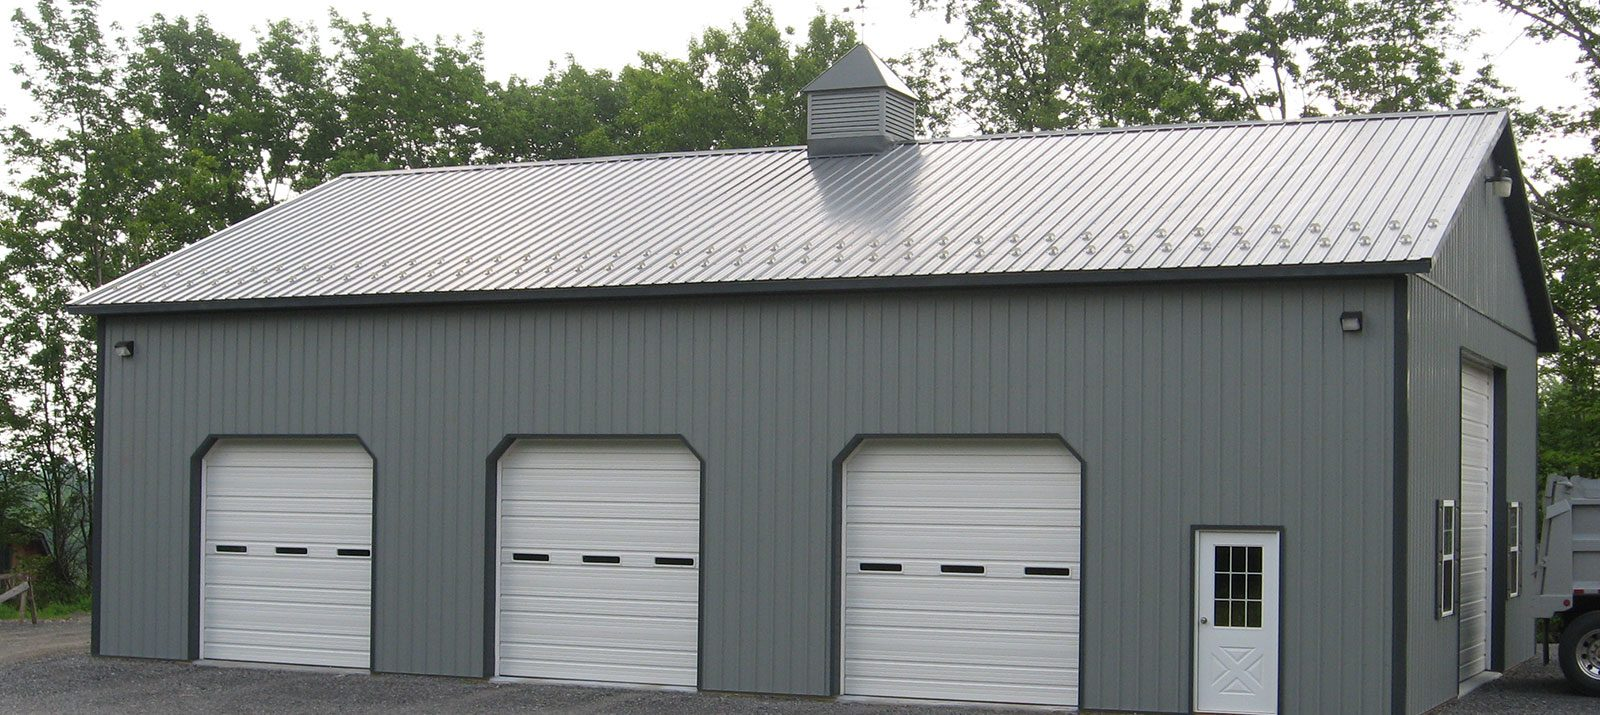 garage pole for and enchanting kits buildings prefab safe lowes kit stall tips menards cost depot equipment home tools barns barn building garages your